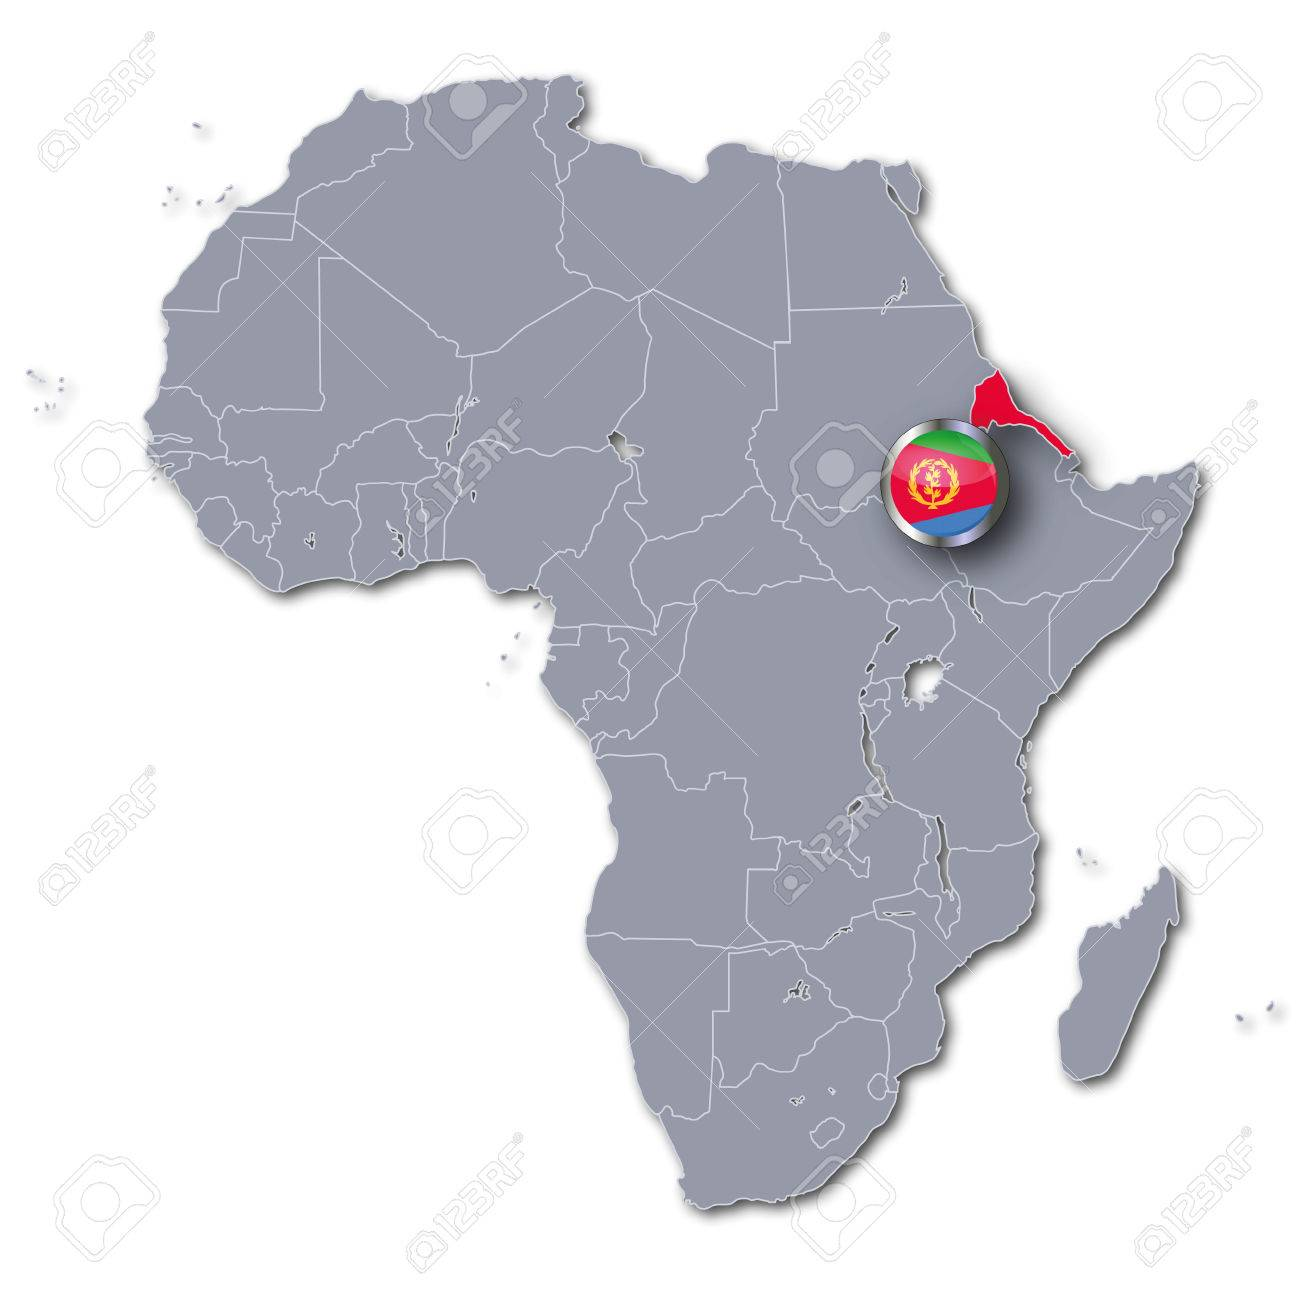 Africa Map With Eritrea Stock Photo, Picture And Royalty Free